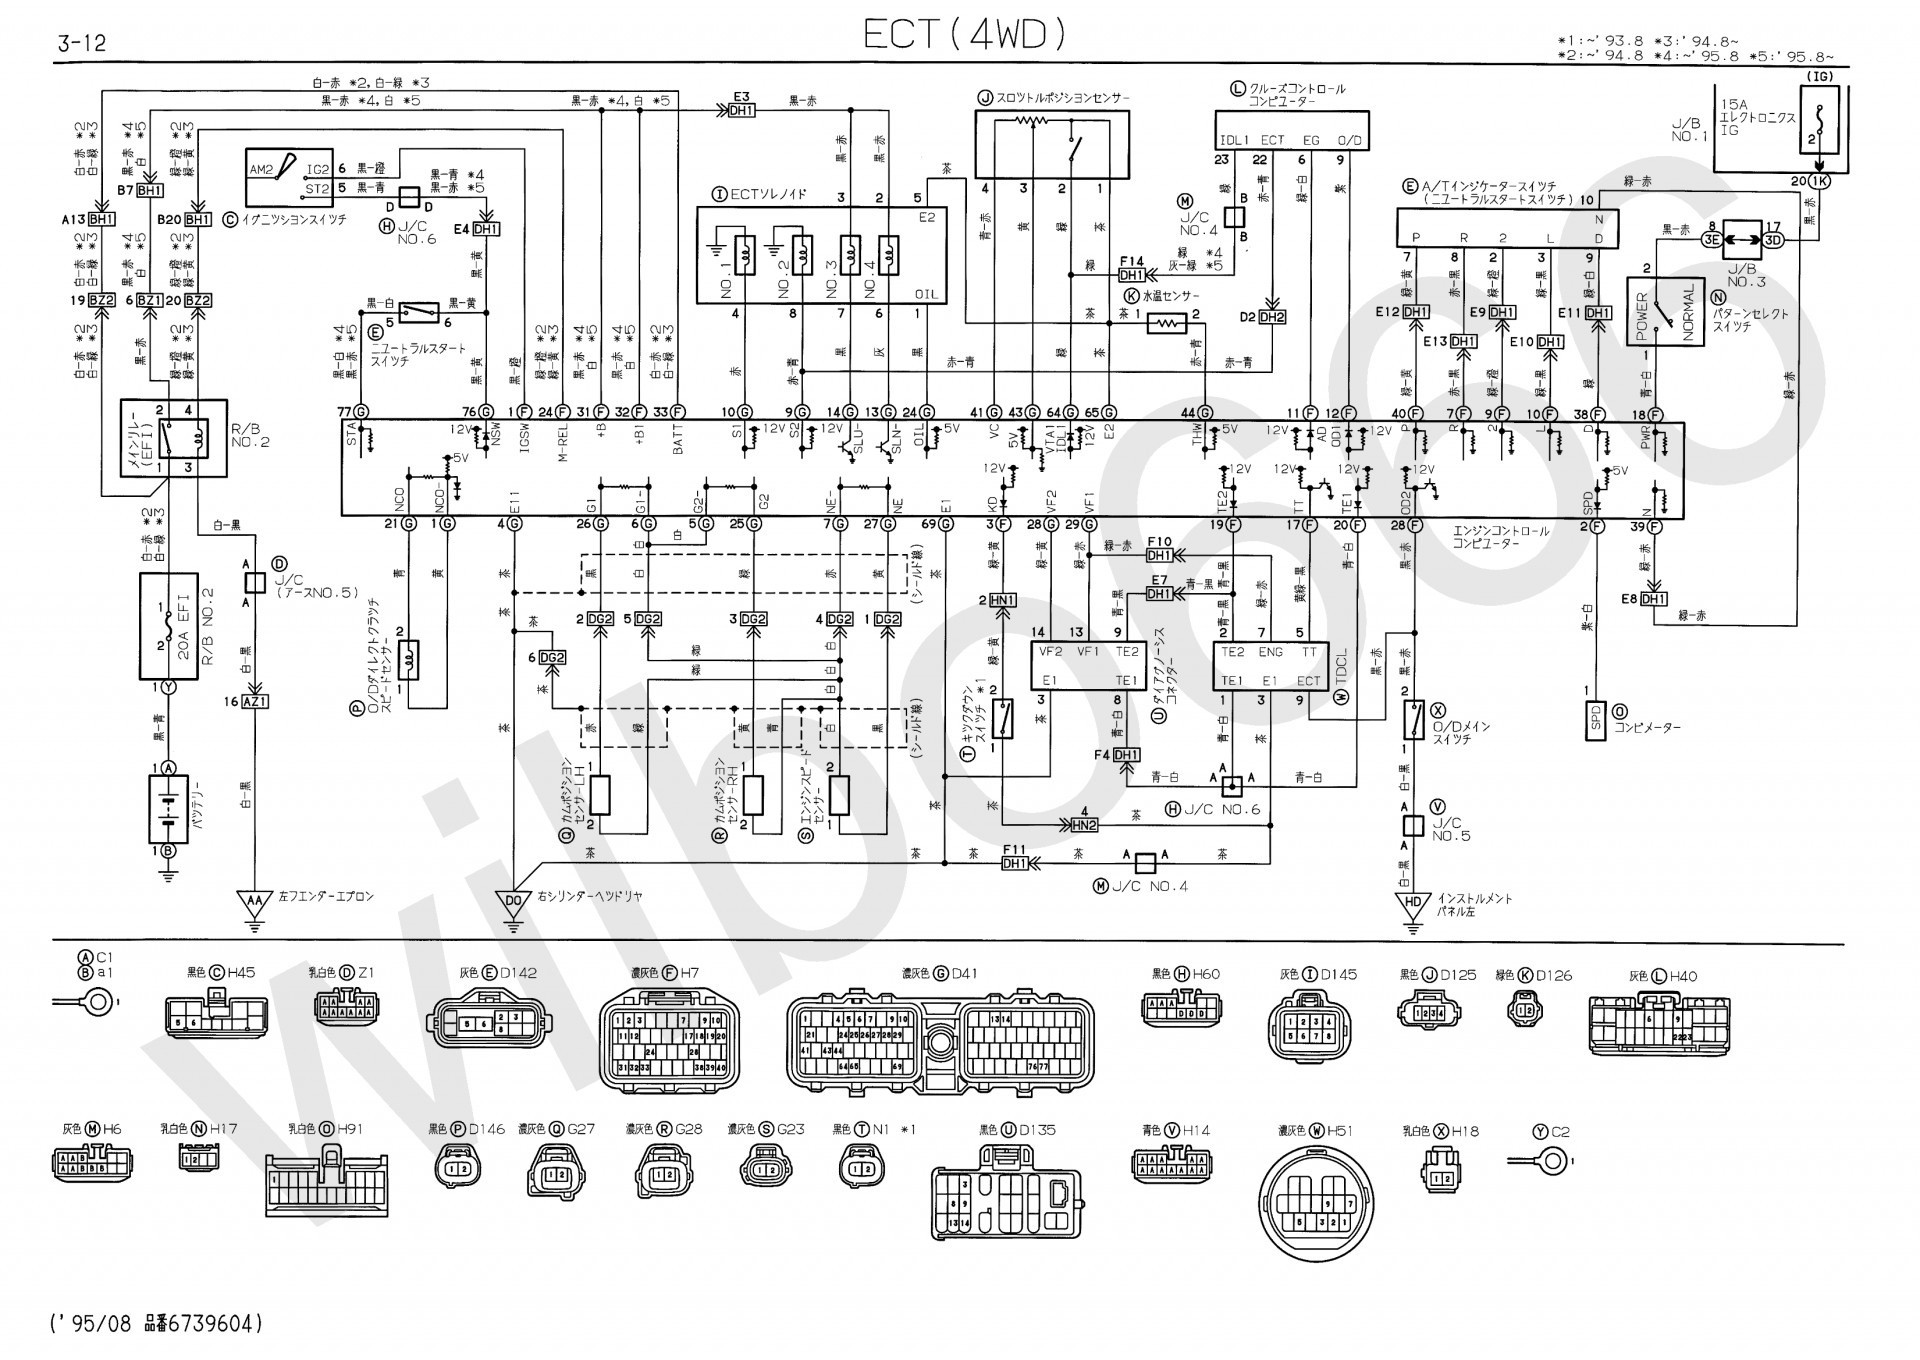 Engine Wiring Diagram Diagram Electricity Unique Diagram Engine Electrical Floor Plan Of Engine Wiring Diagram